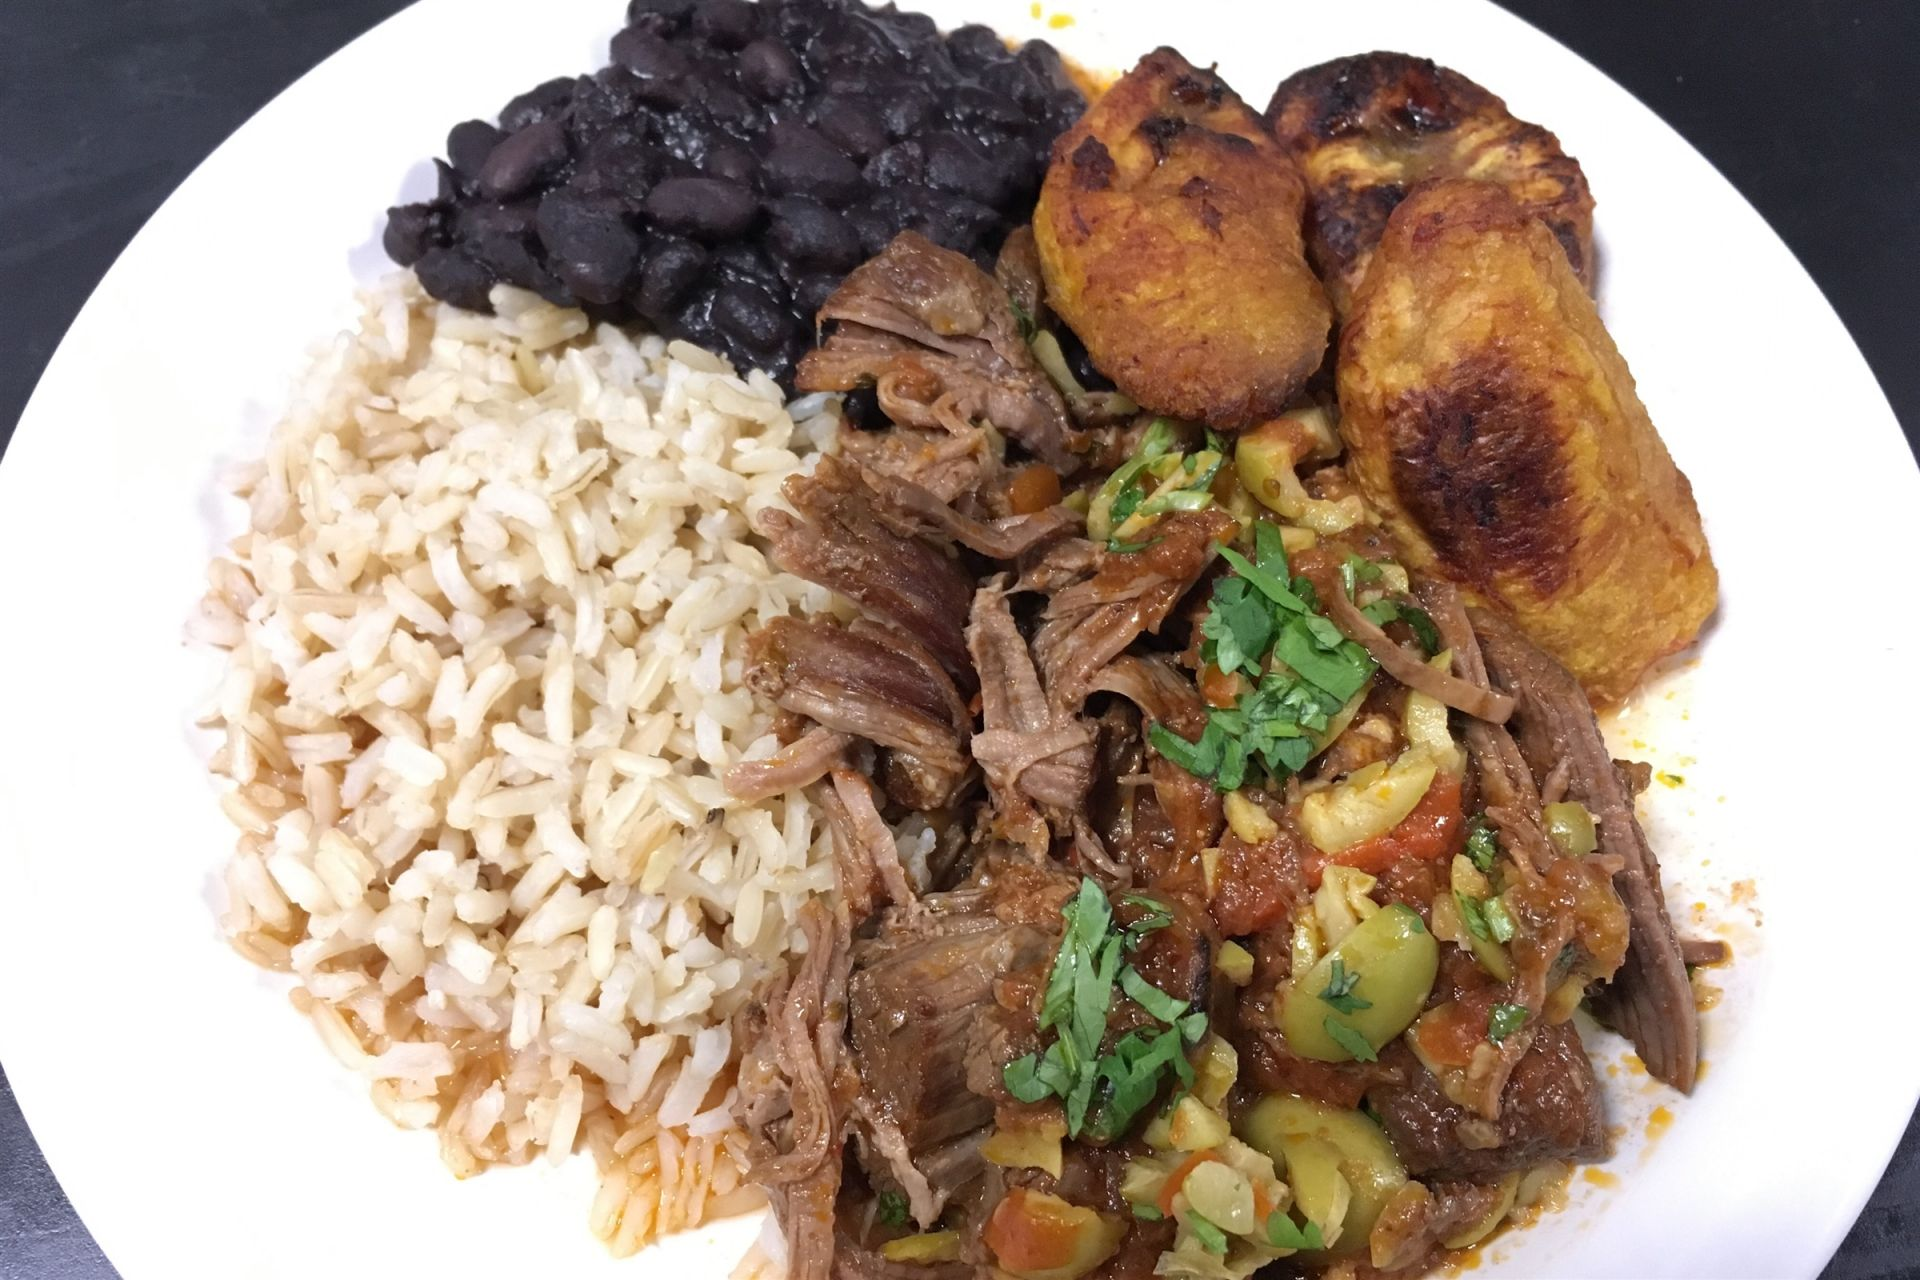 Cubian Ropa Vieja with brown rice, roasted plantains, and black beans.